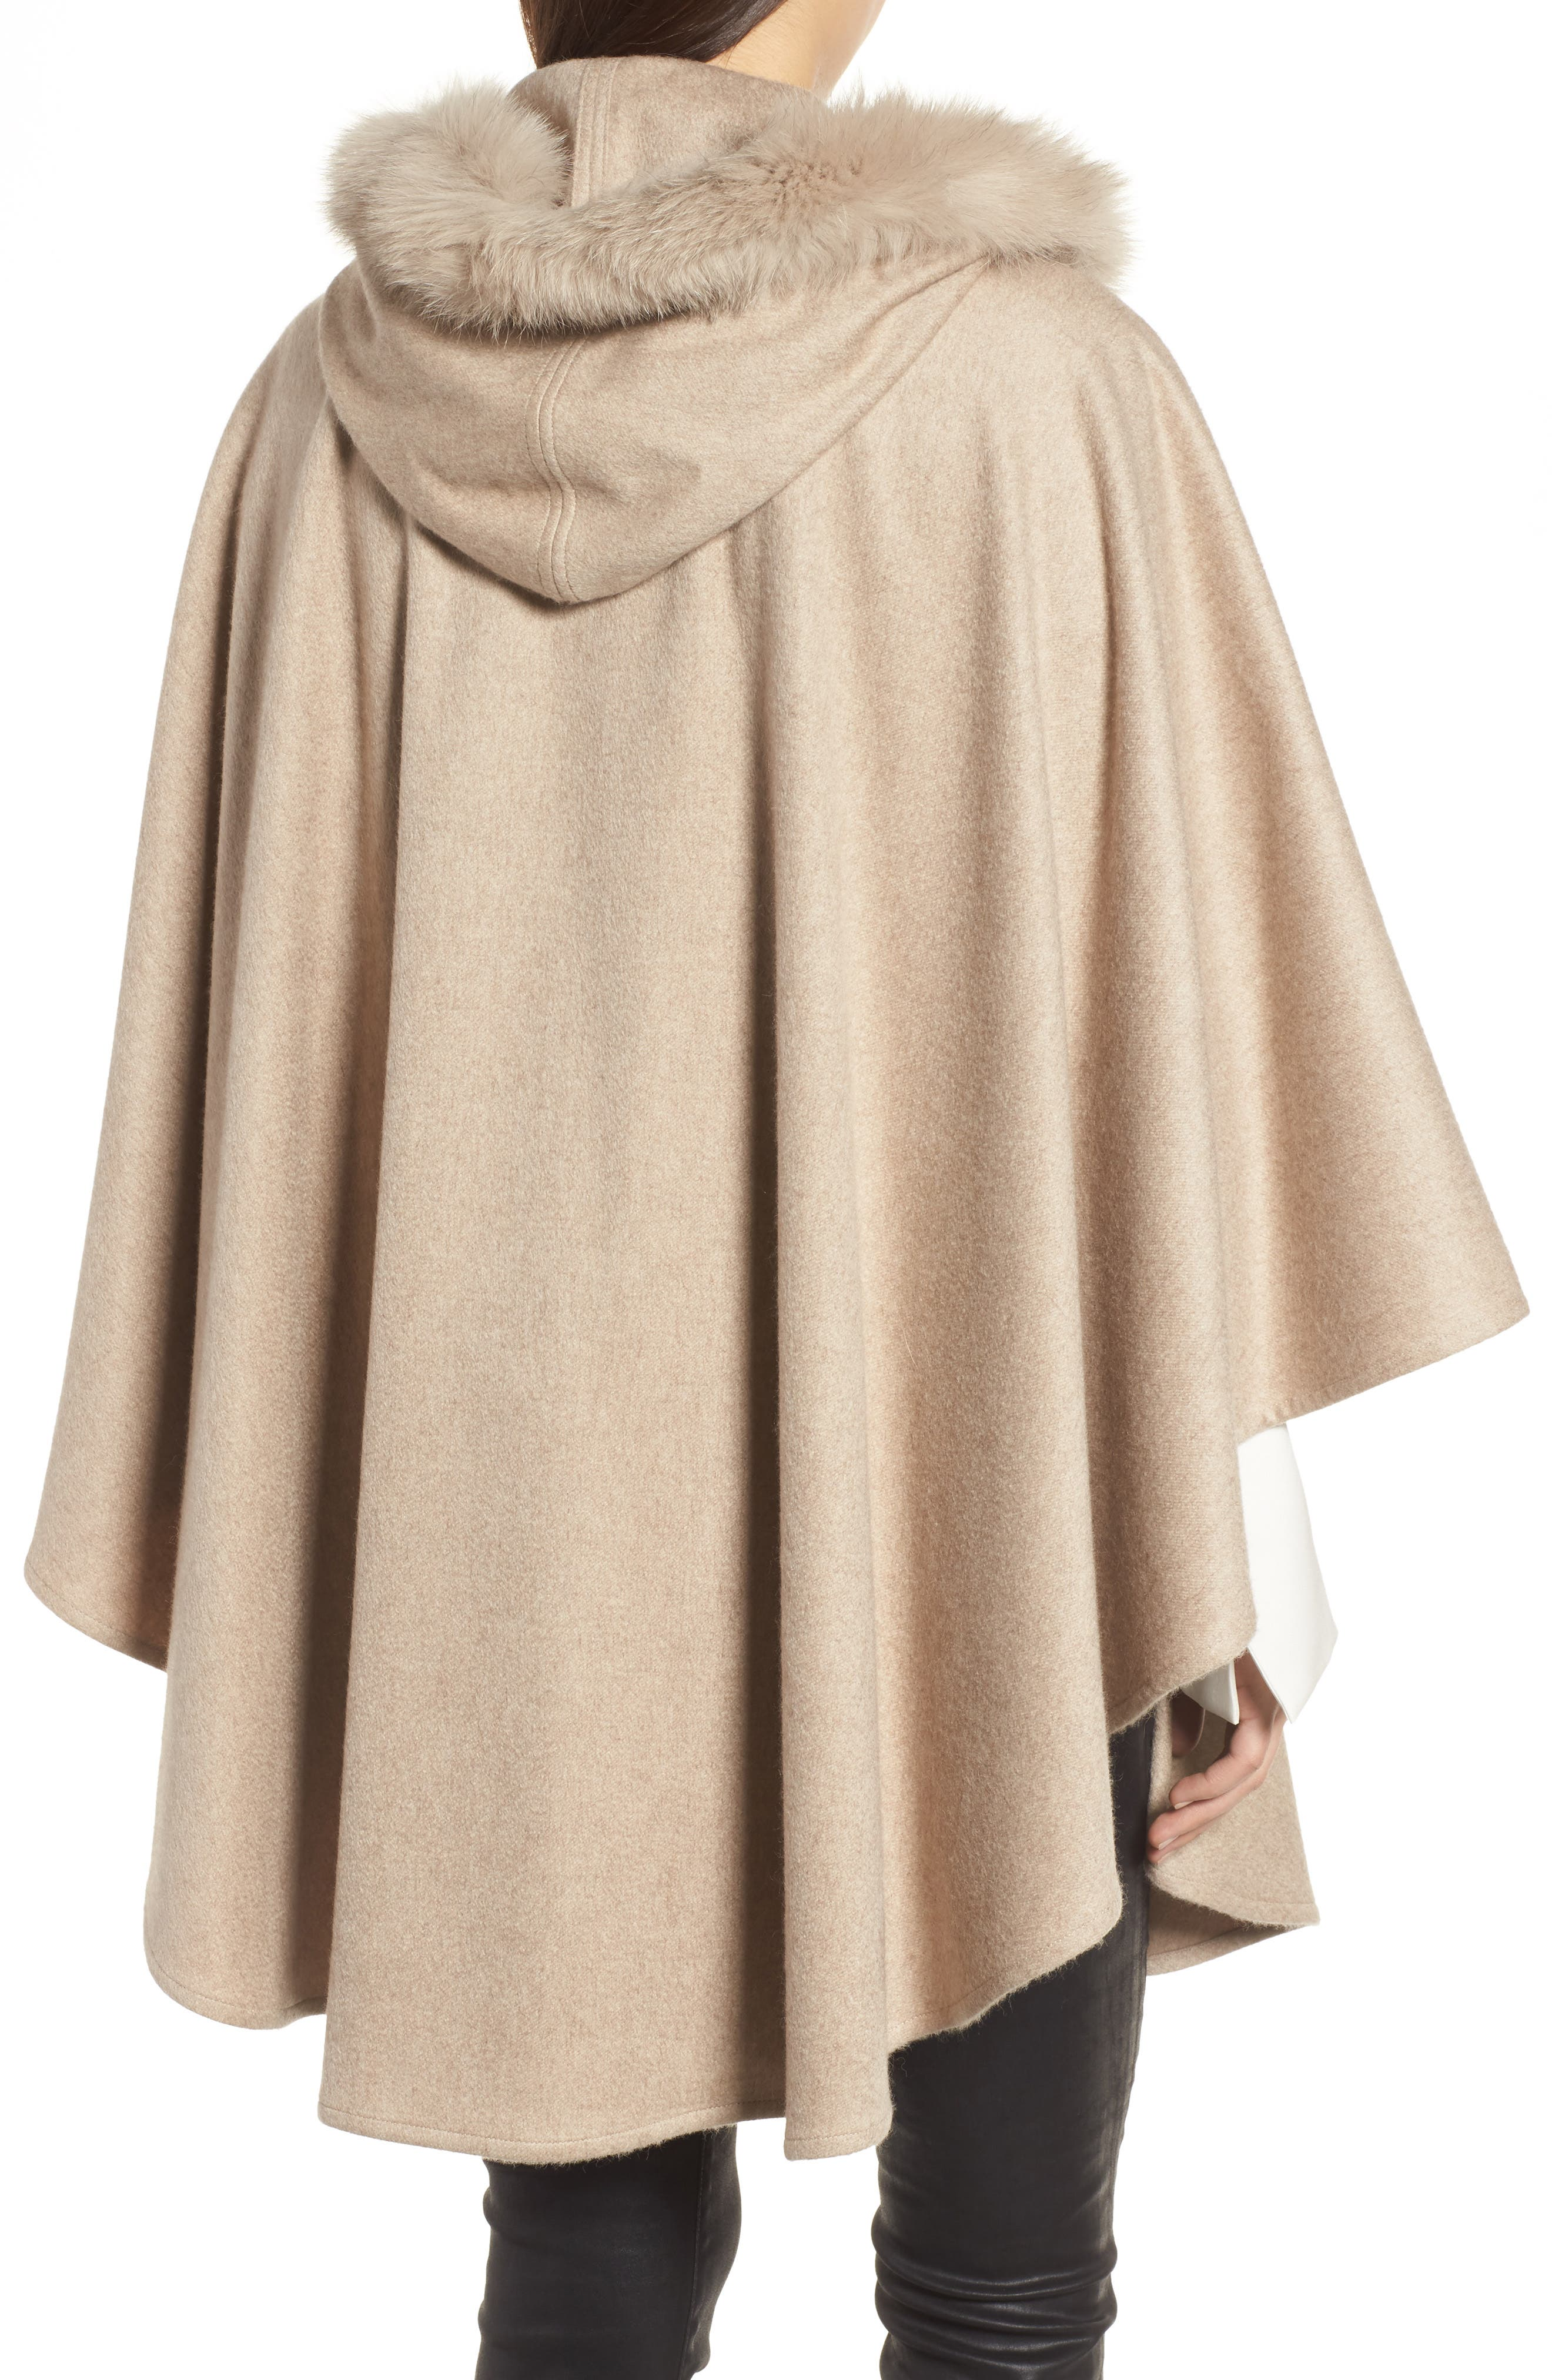 Cashmere Hooded Cape with Genuine Fox Fur Trim,                             Alternate thumbnail 2, color,                             020